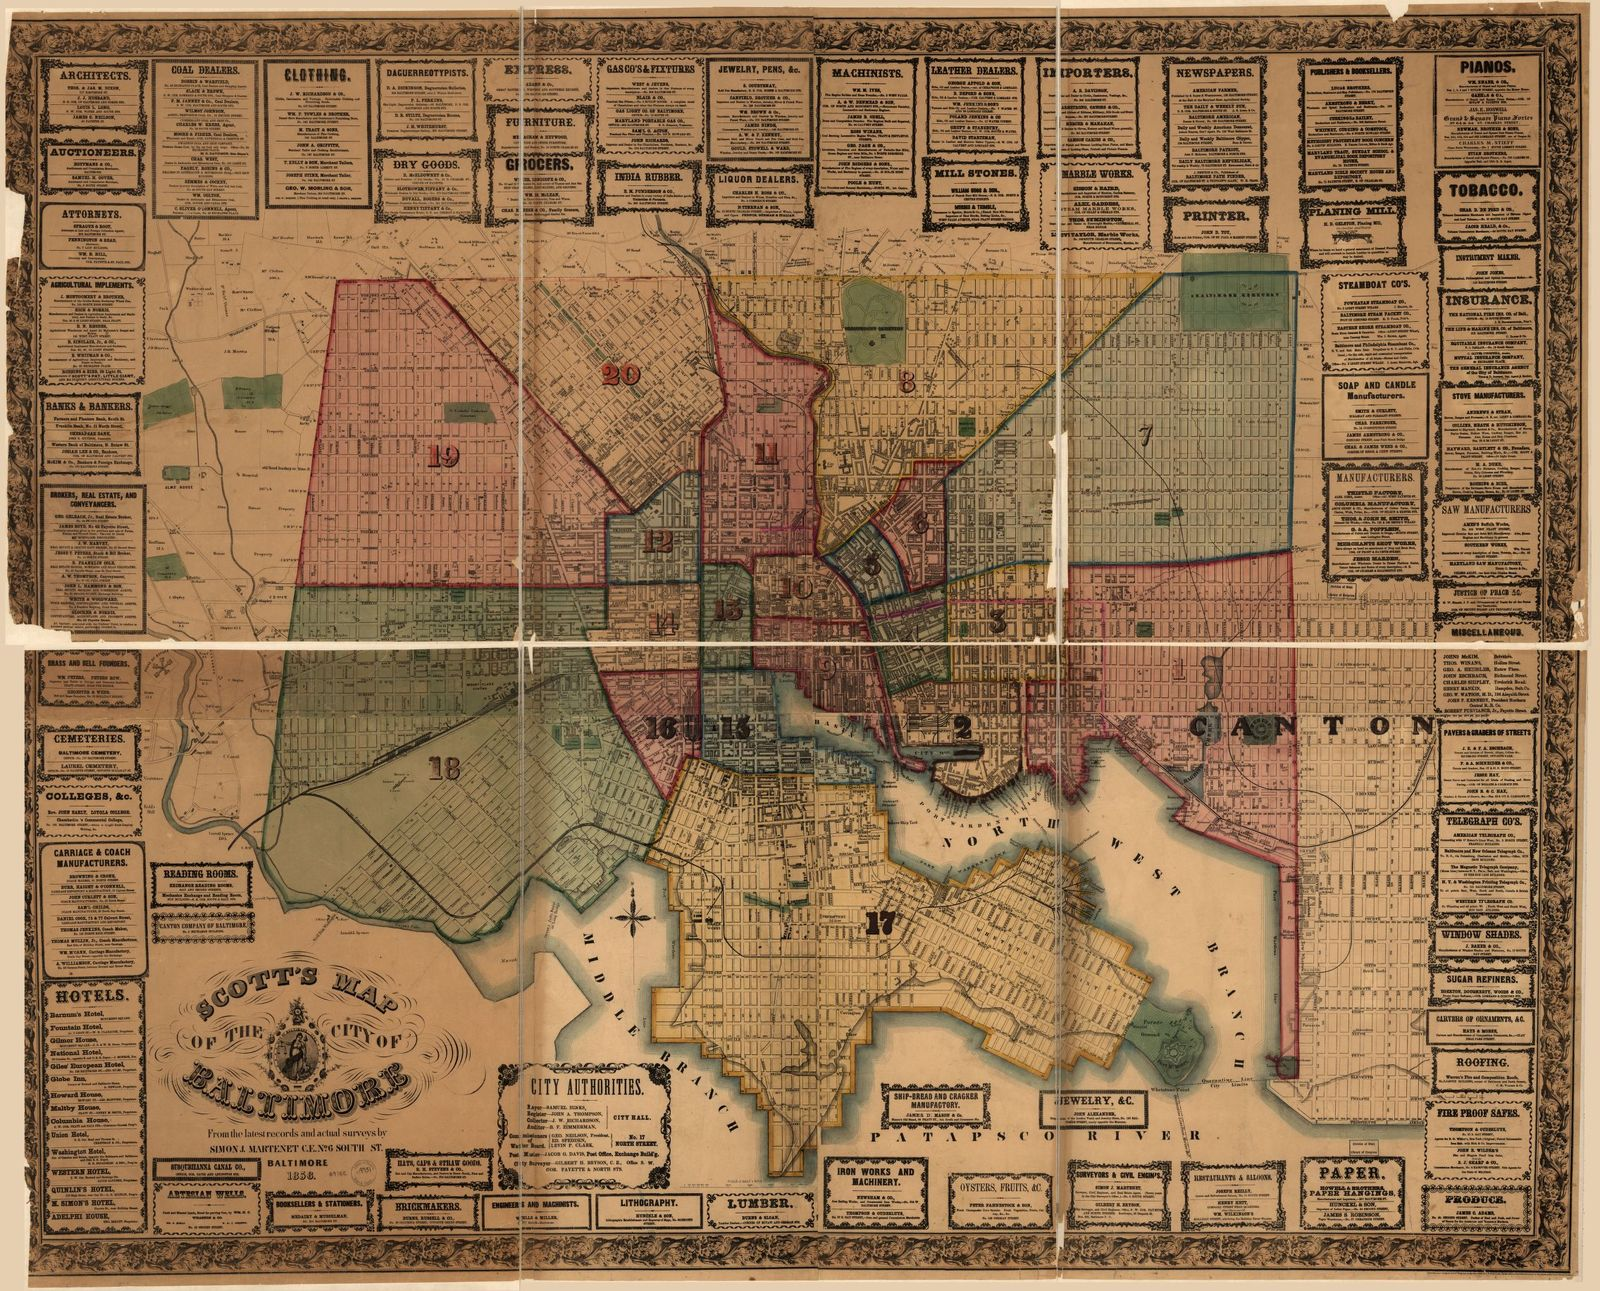 Scott's map of the city of Baltimore. From latest records and actual surveys by